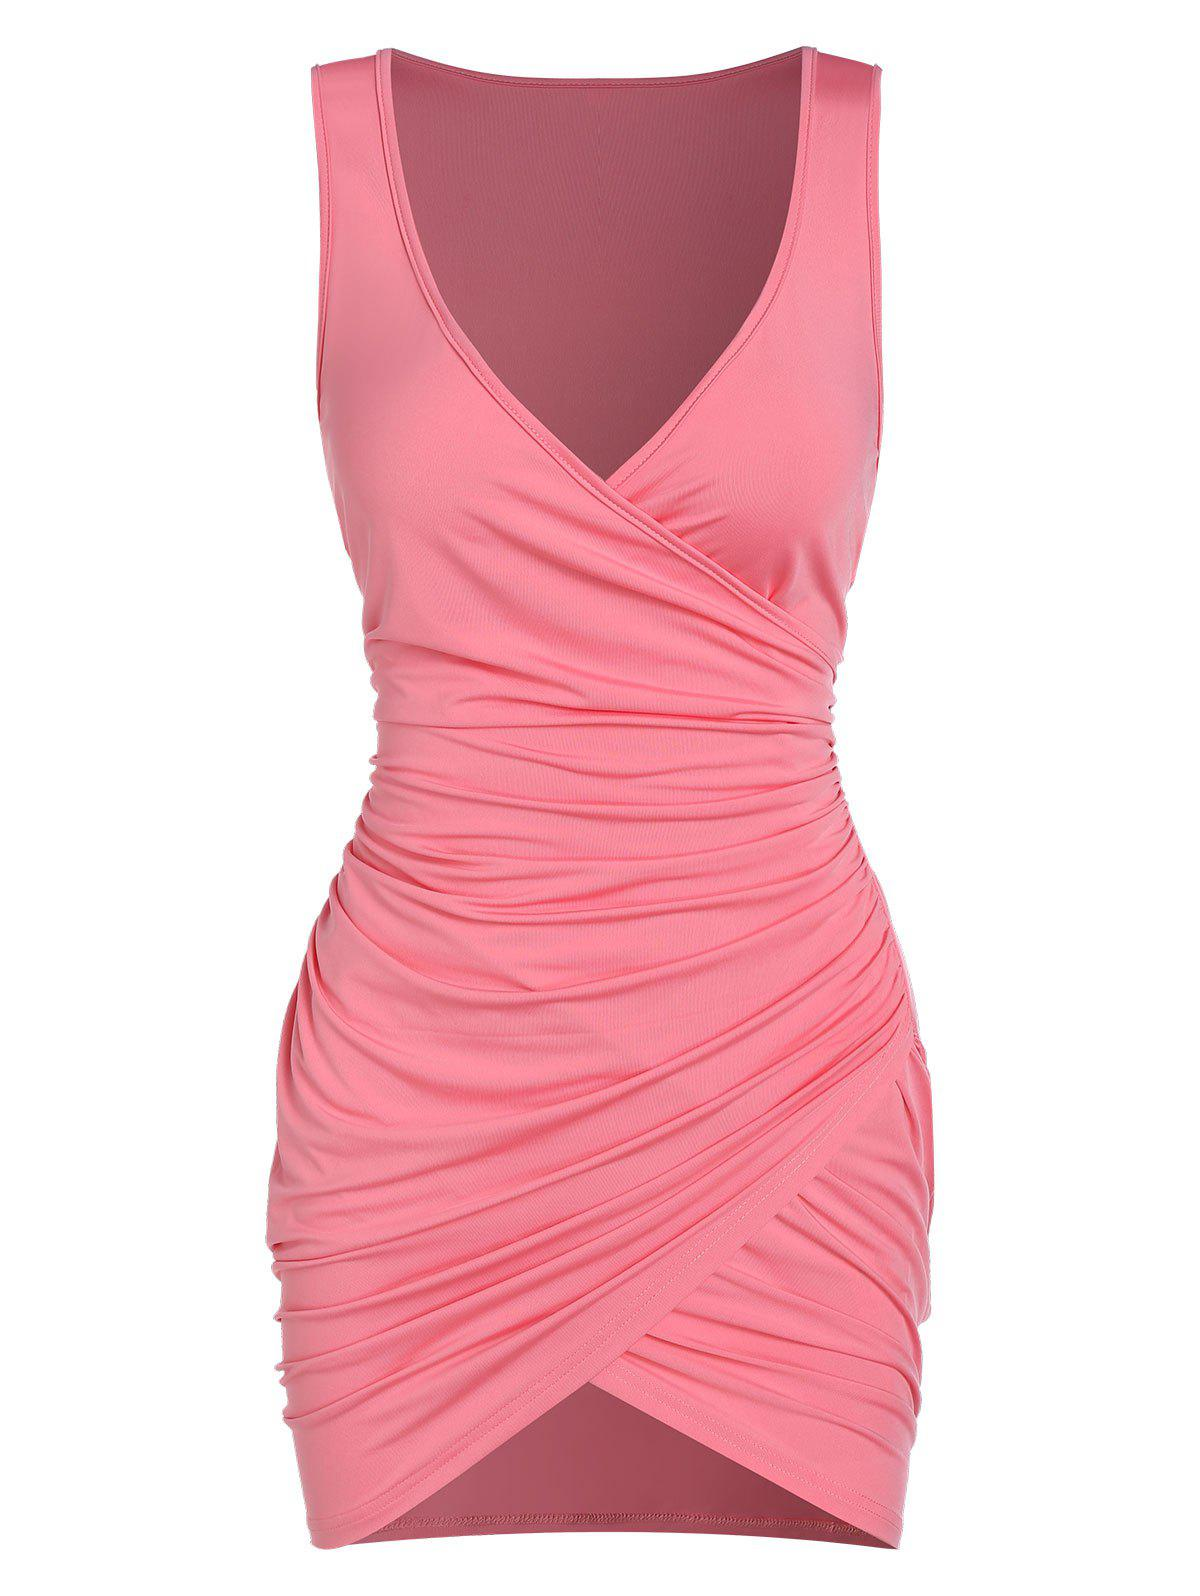 Sleeveless Ruched Surplice Sheath Dress - PINK L